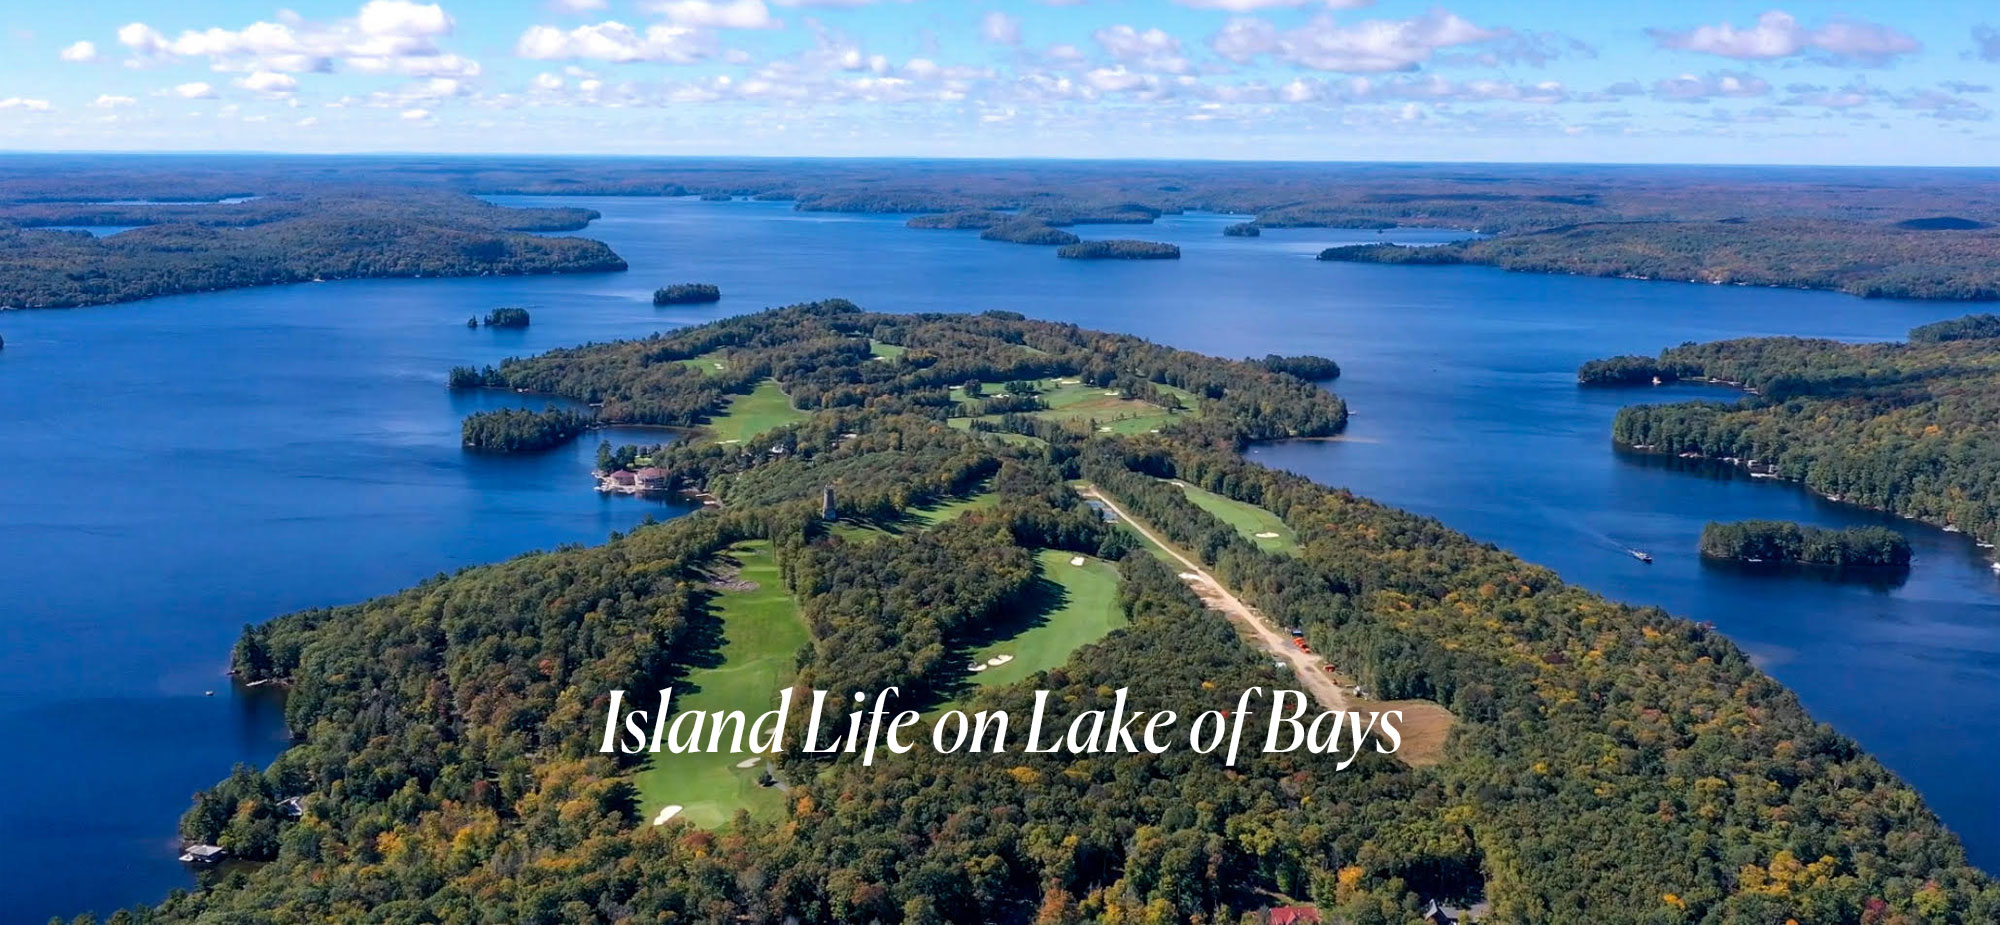 Island Life on Lake of Bays, Muskoka